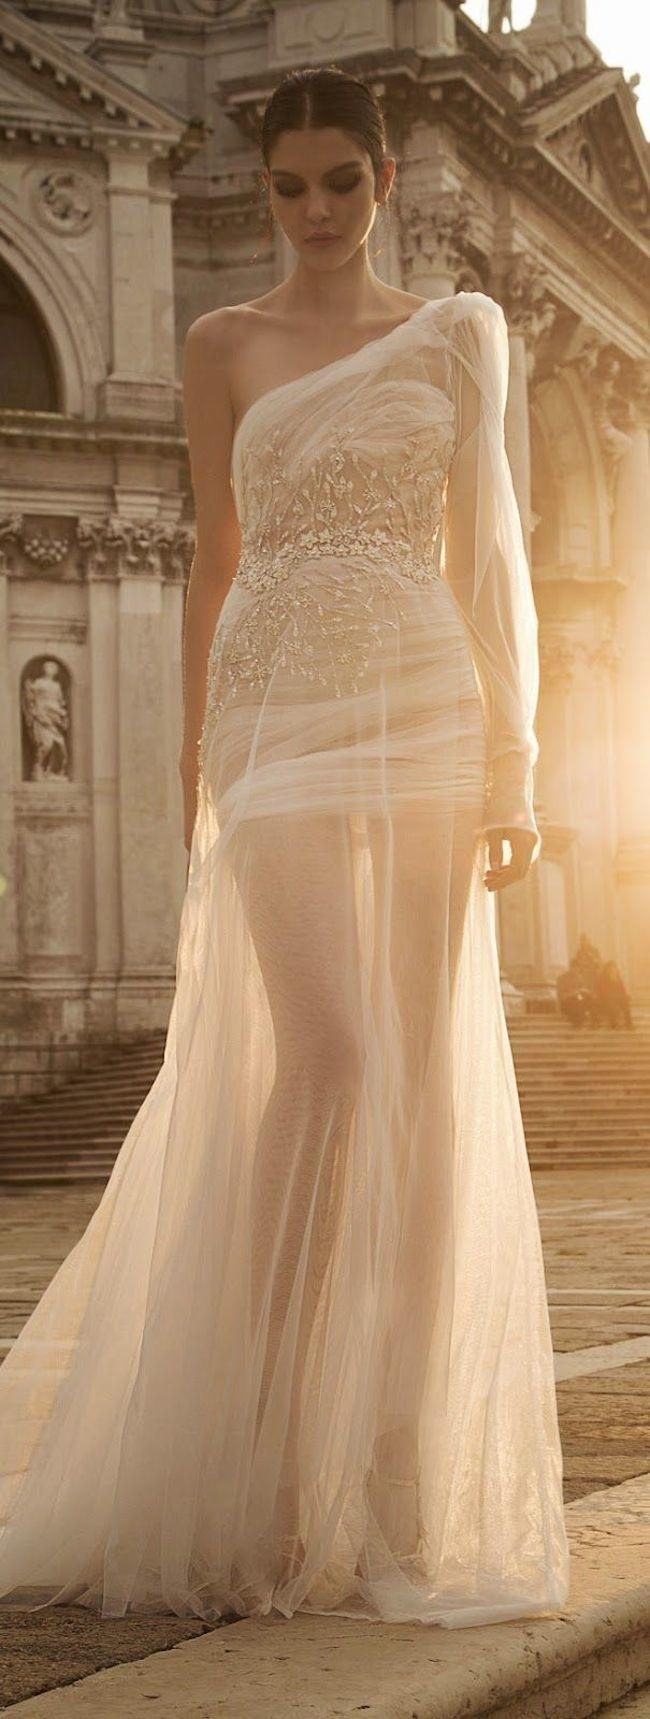 long-sleeve-wedding-dress-1-082115ch